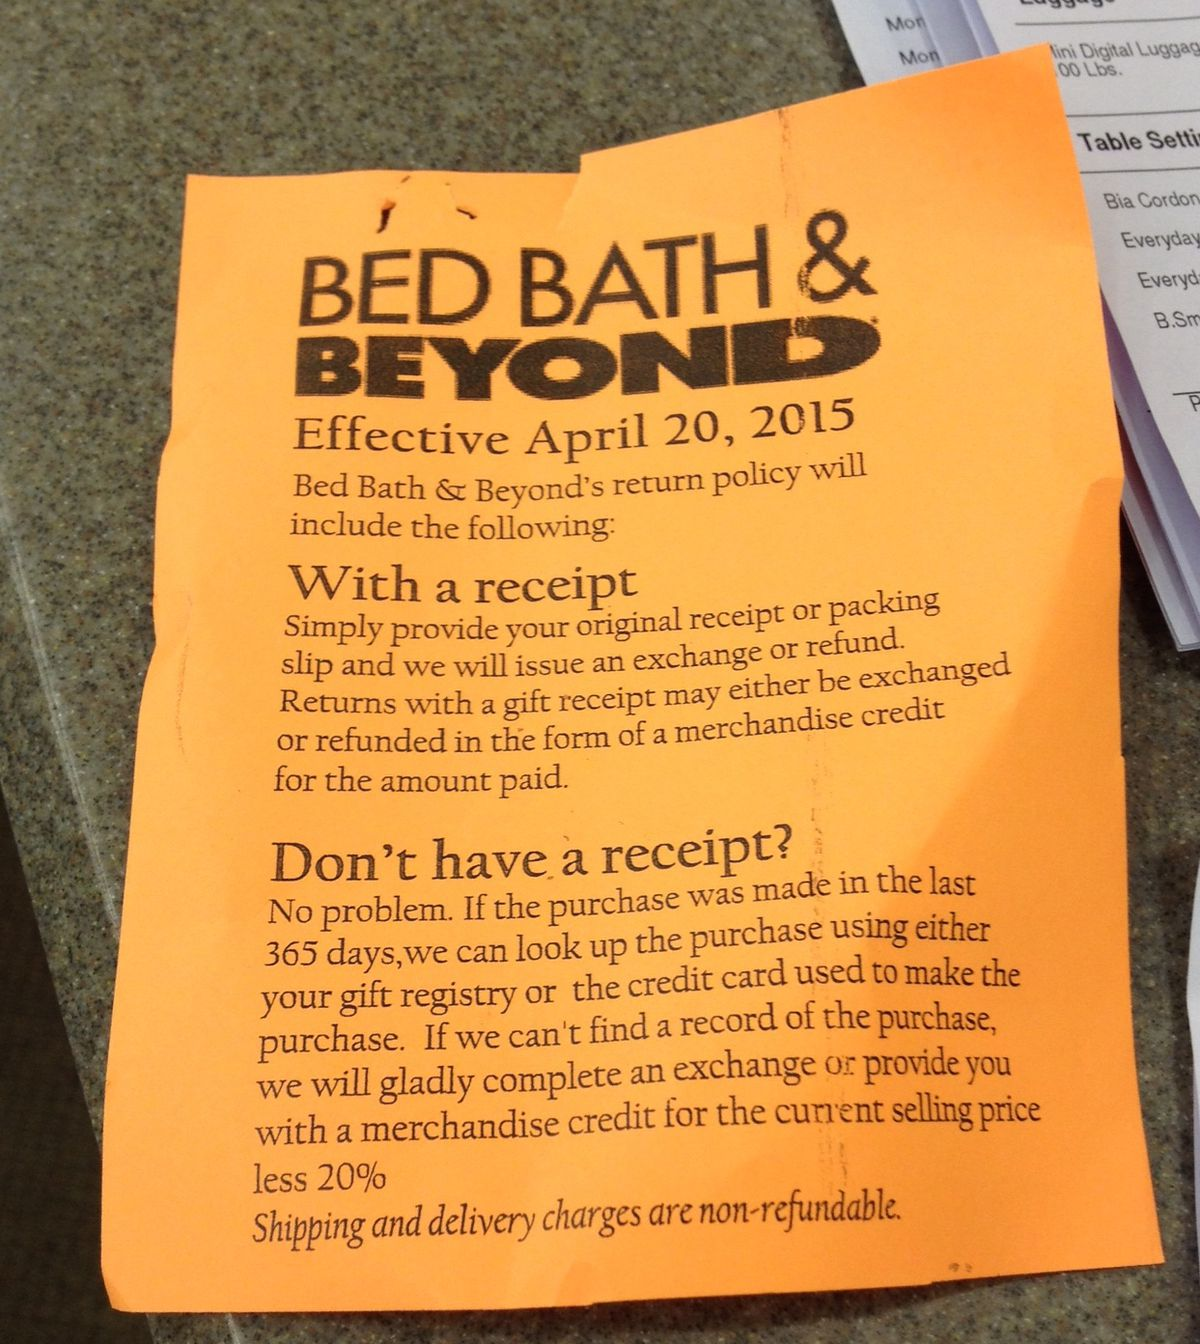 Exclusive Say Goodbye To Bed Bath Beyond S Generous Return Policy Racked